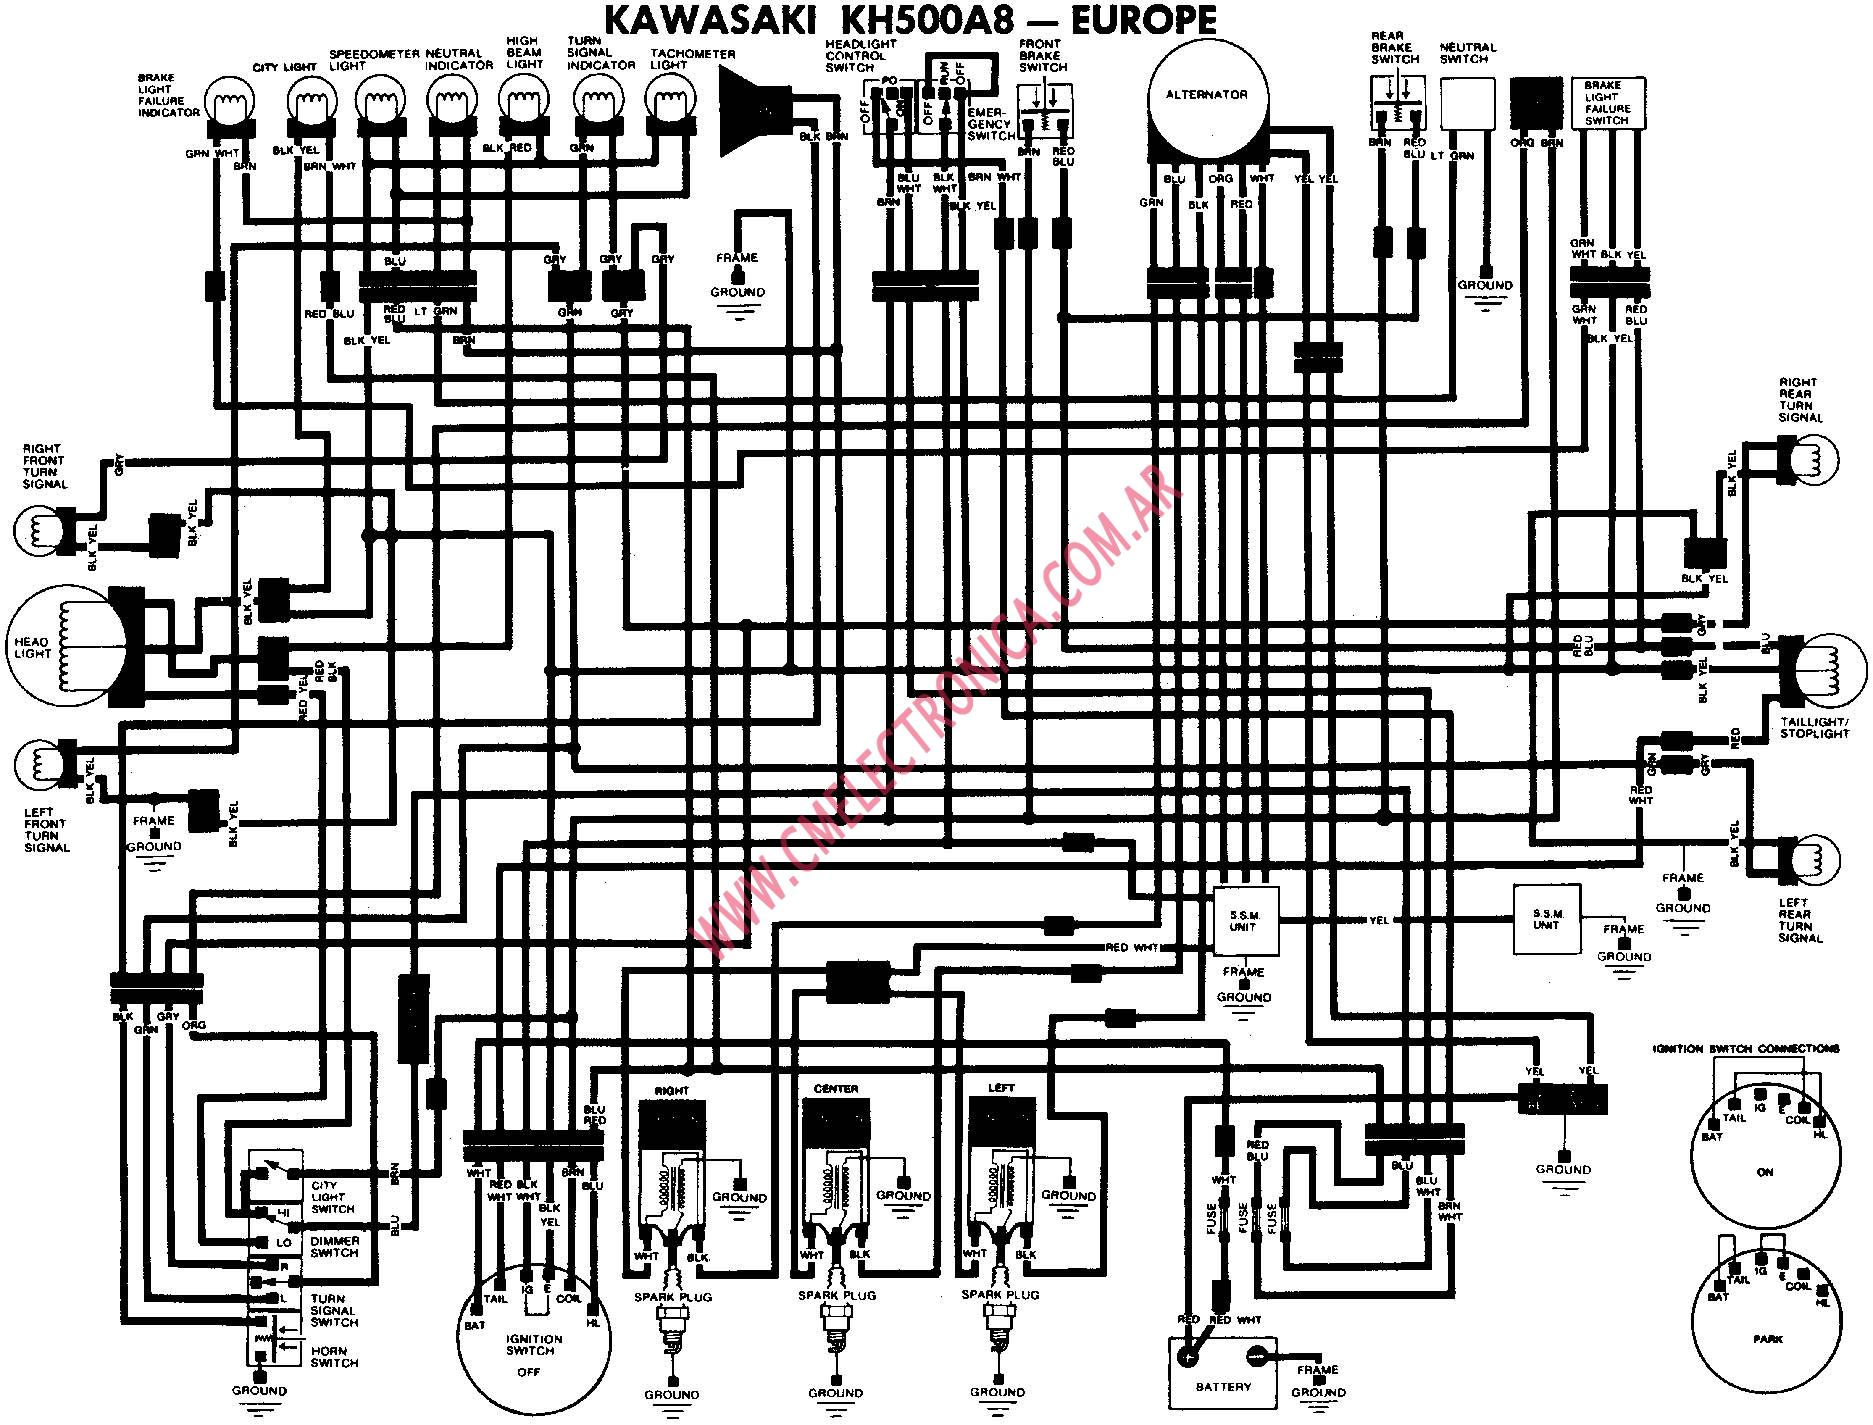 kawasaki brute force 750 wiring diagram 1976 ford f150 diagrama kh500a8 eu